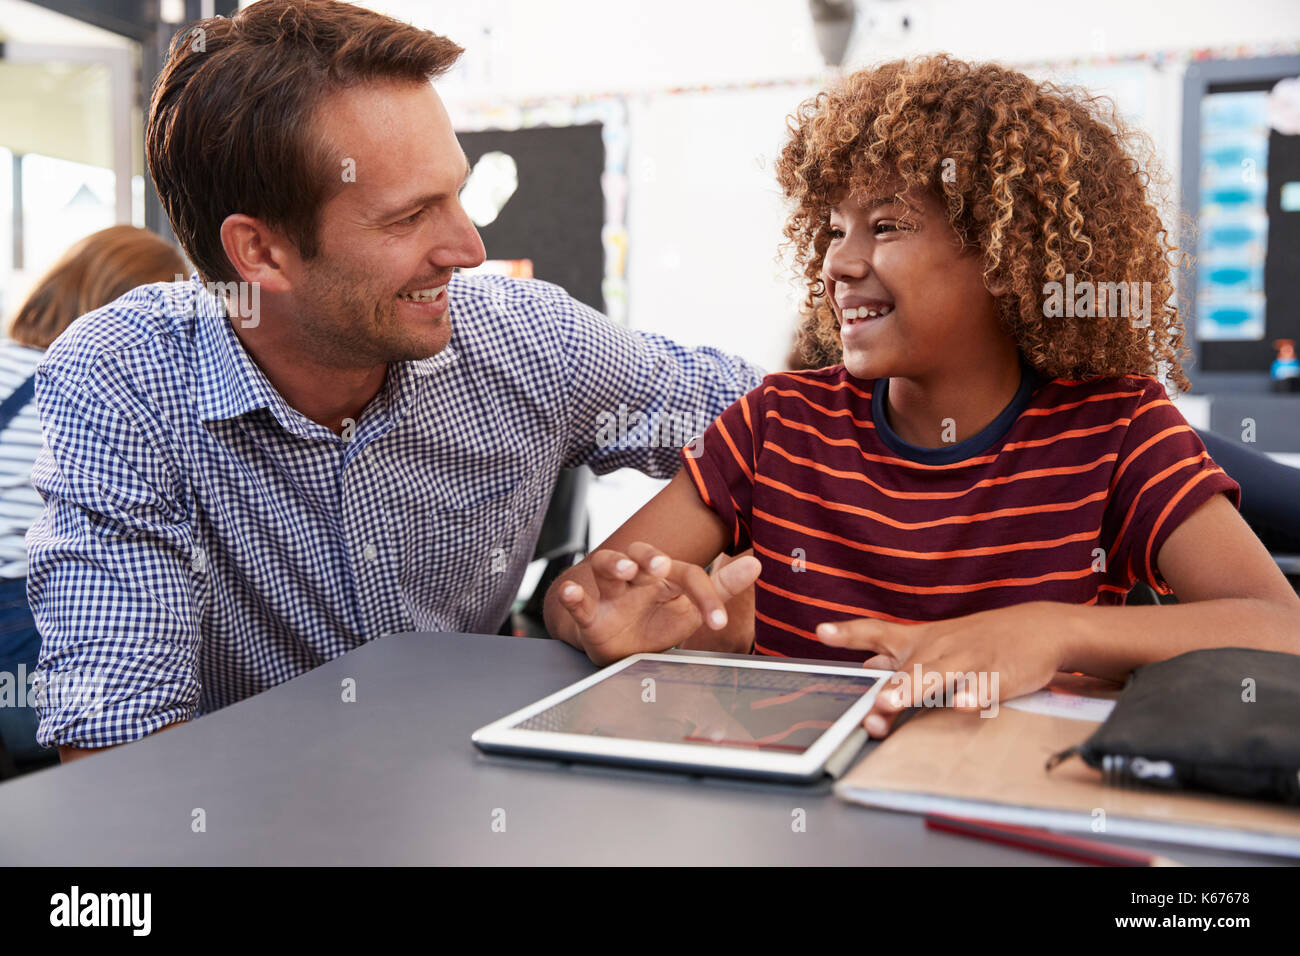 Teacher and schoolboy with tablet looking at each other - Stock Image